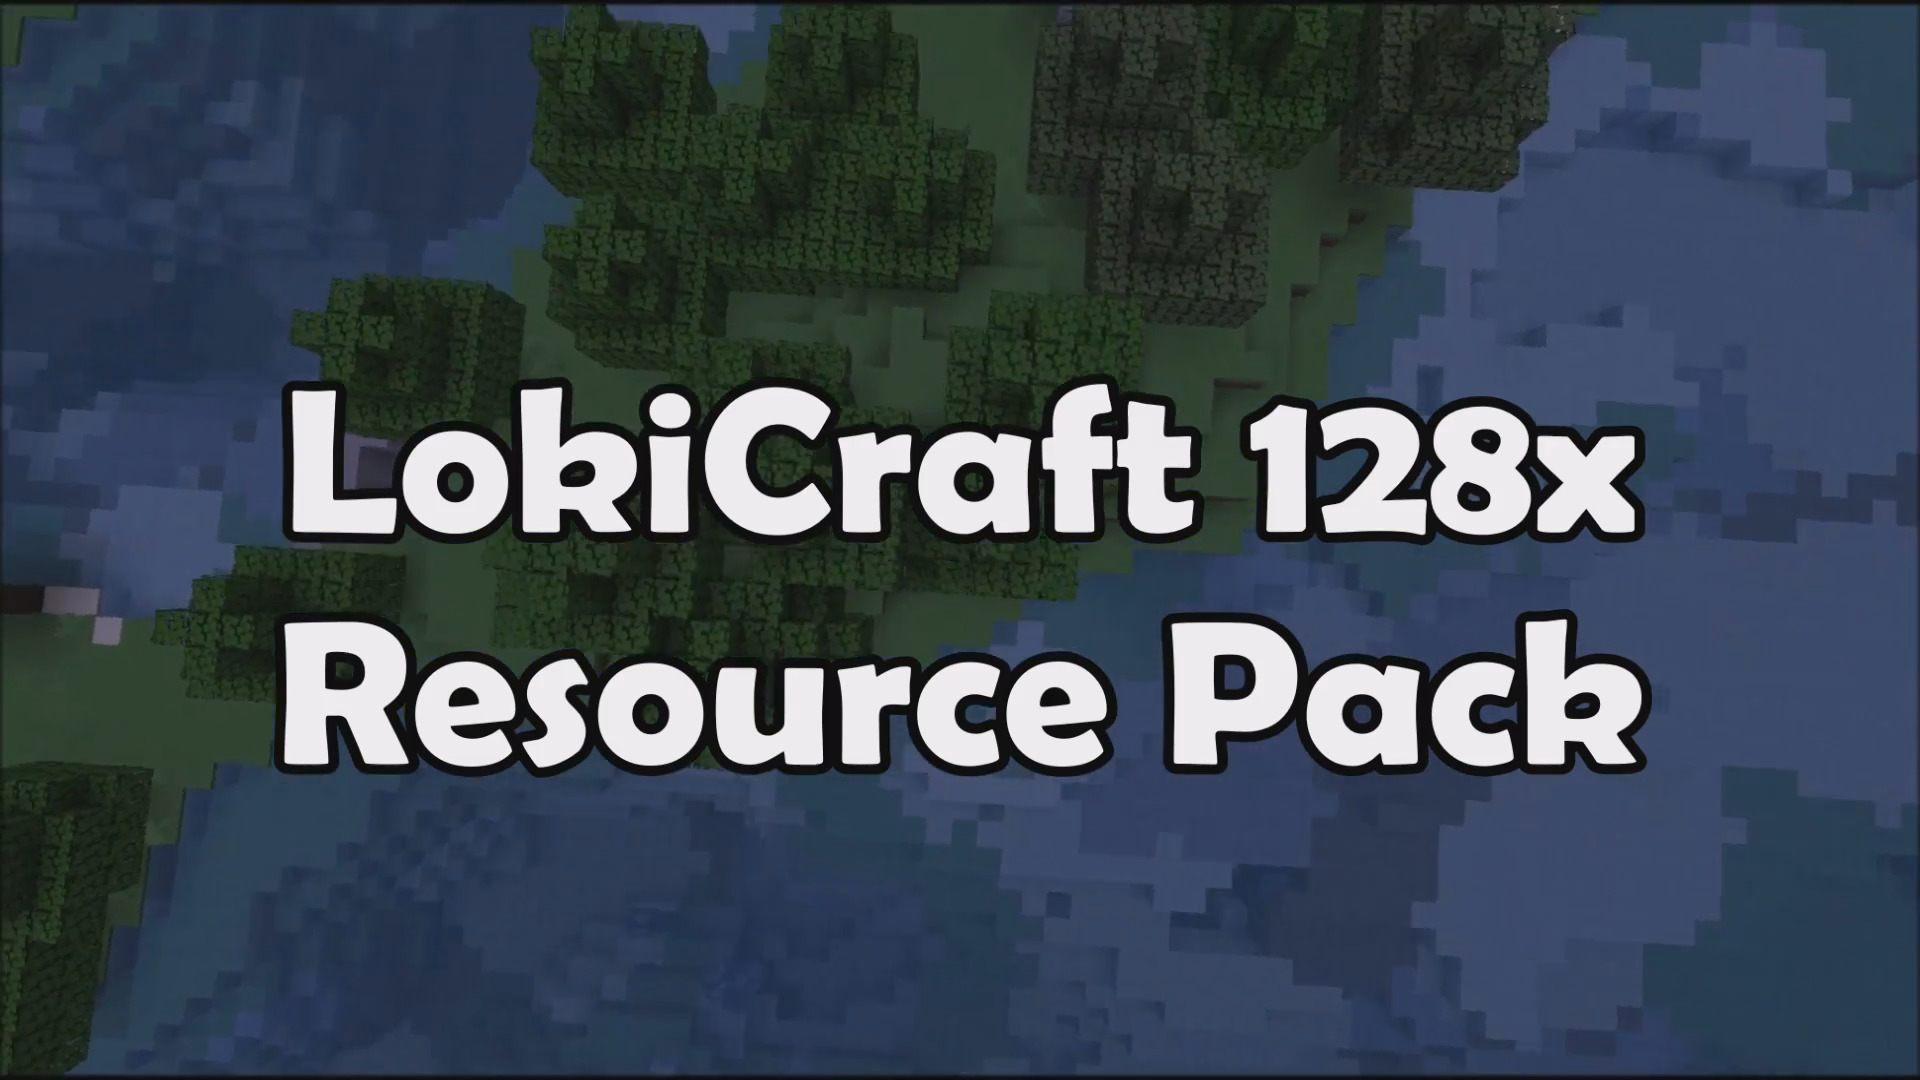 LokiCraft-Resource-Pack